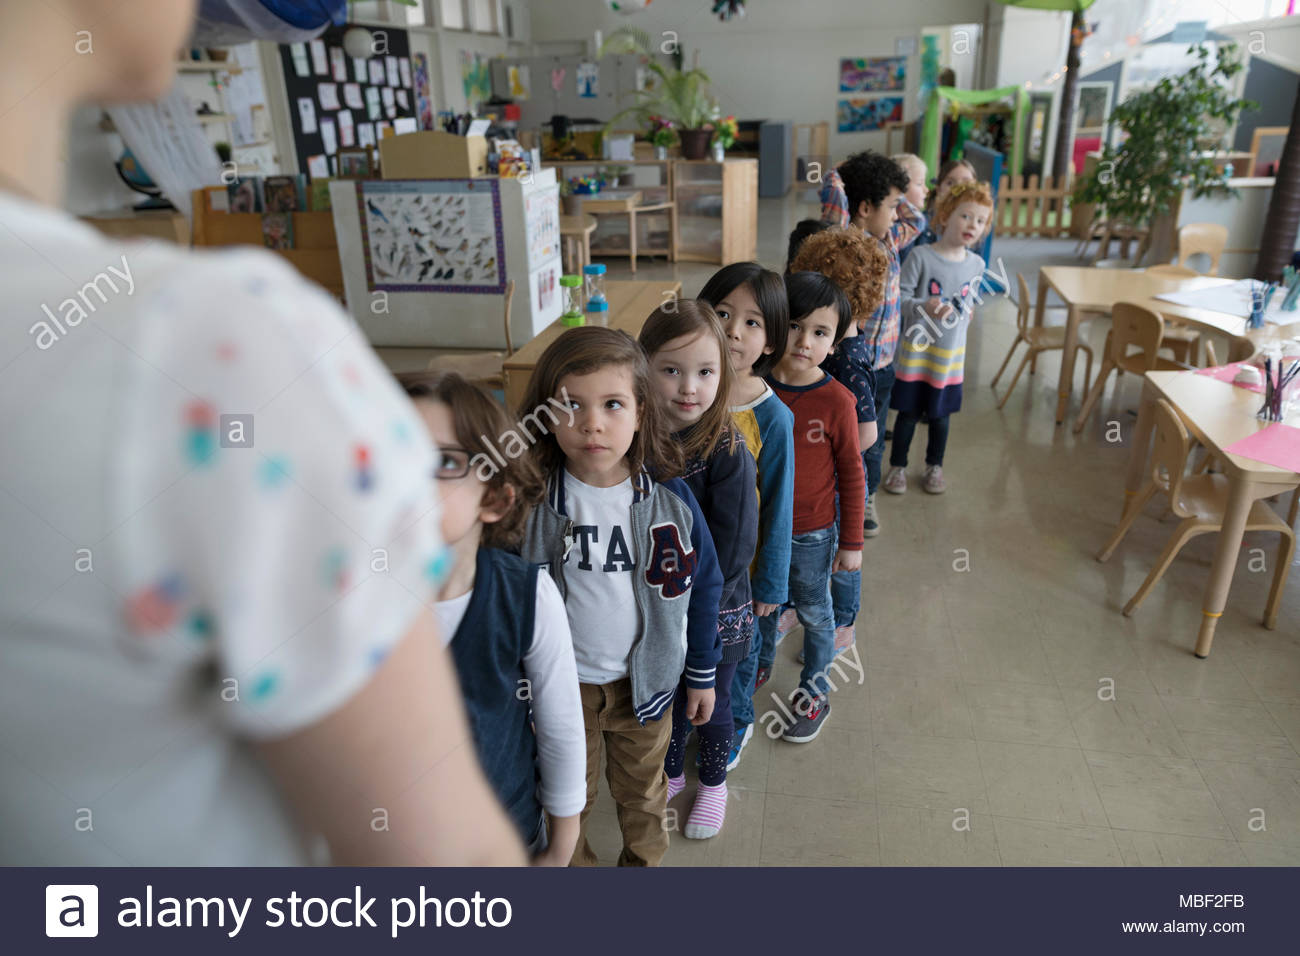 Preschool students lining up for teacher in classroom - Stock Image